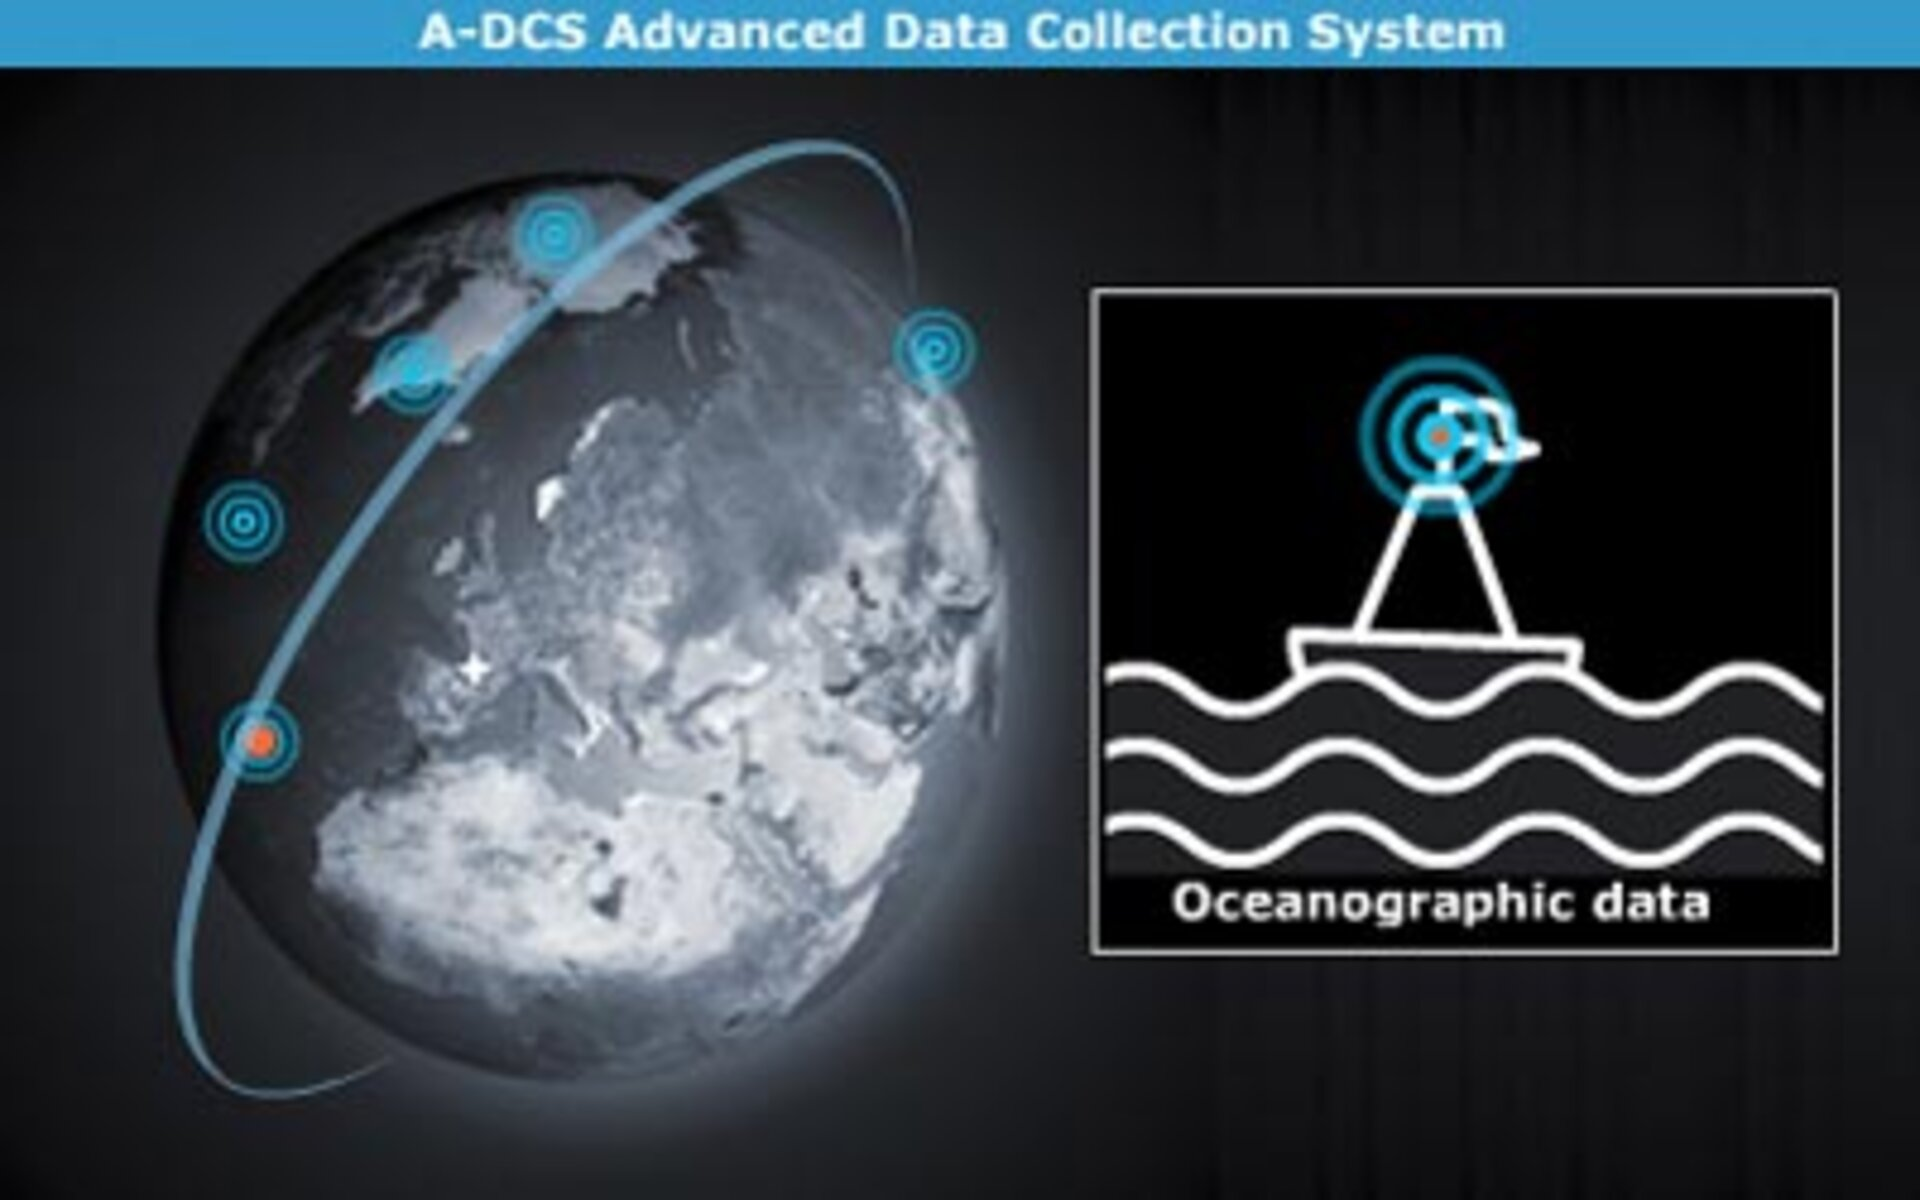 A-DCS Advanced Data Collection System